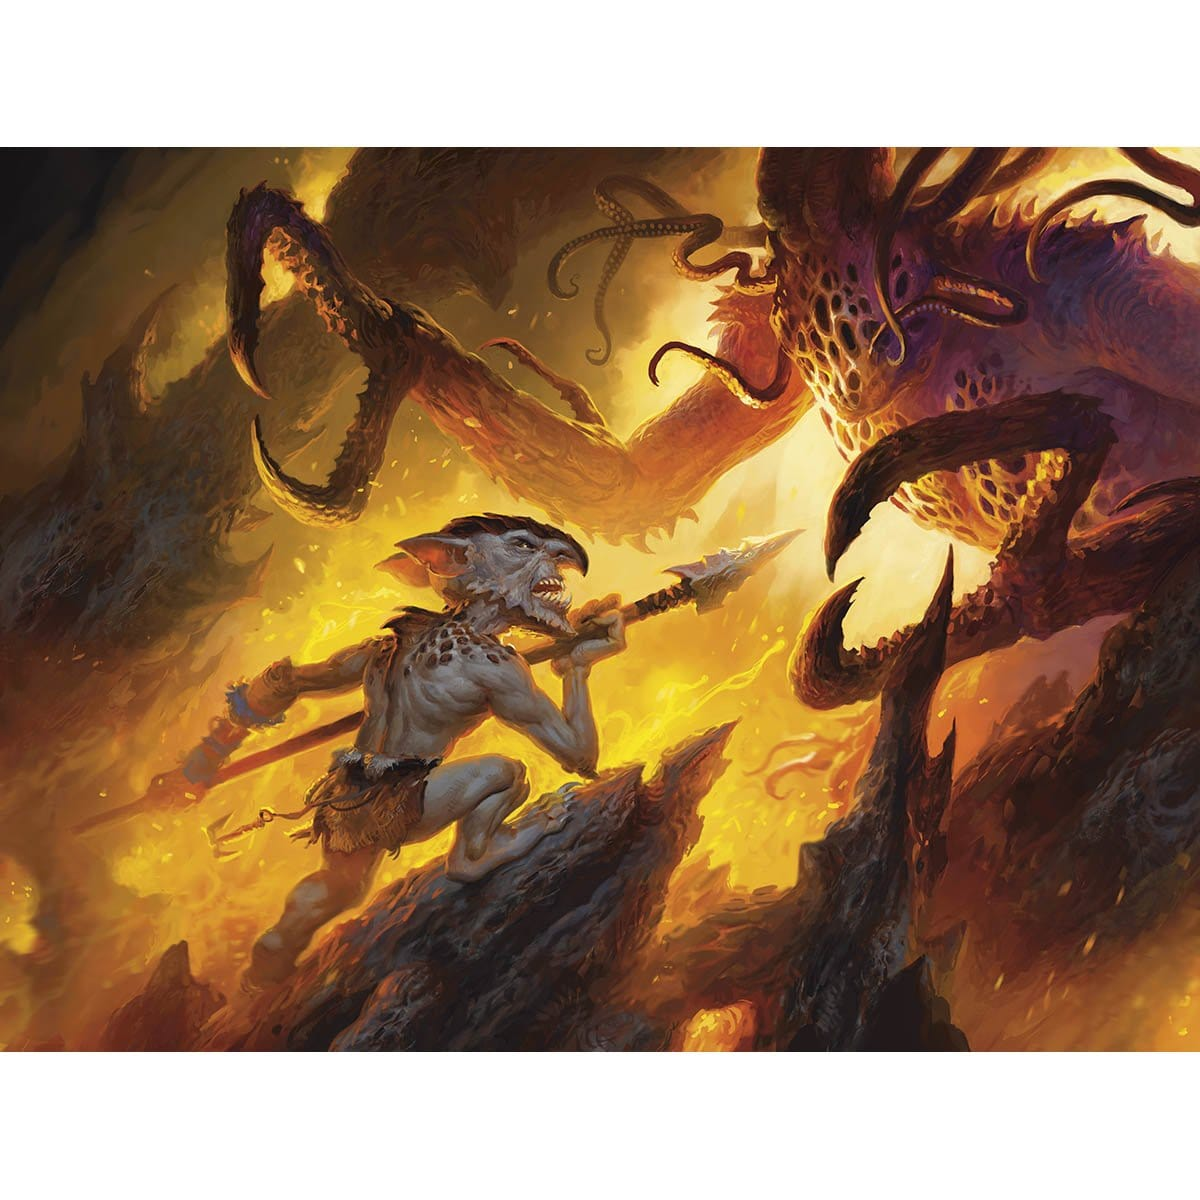 Sure Strike Print - Print - Original Magic Art - Accessories for Magic the Gathering and other card games